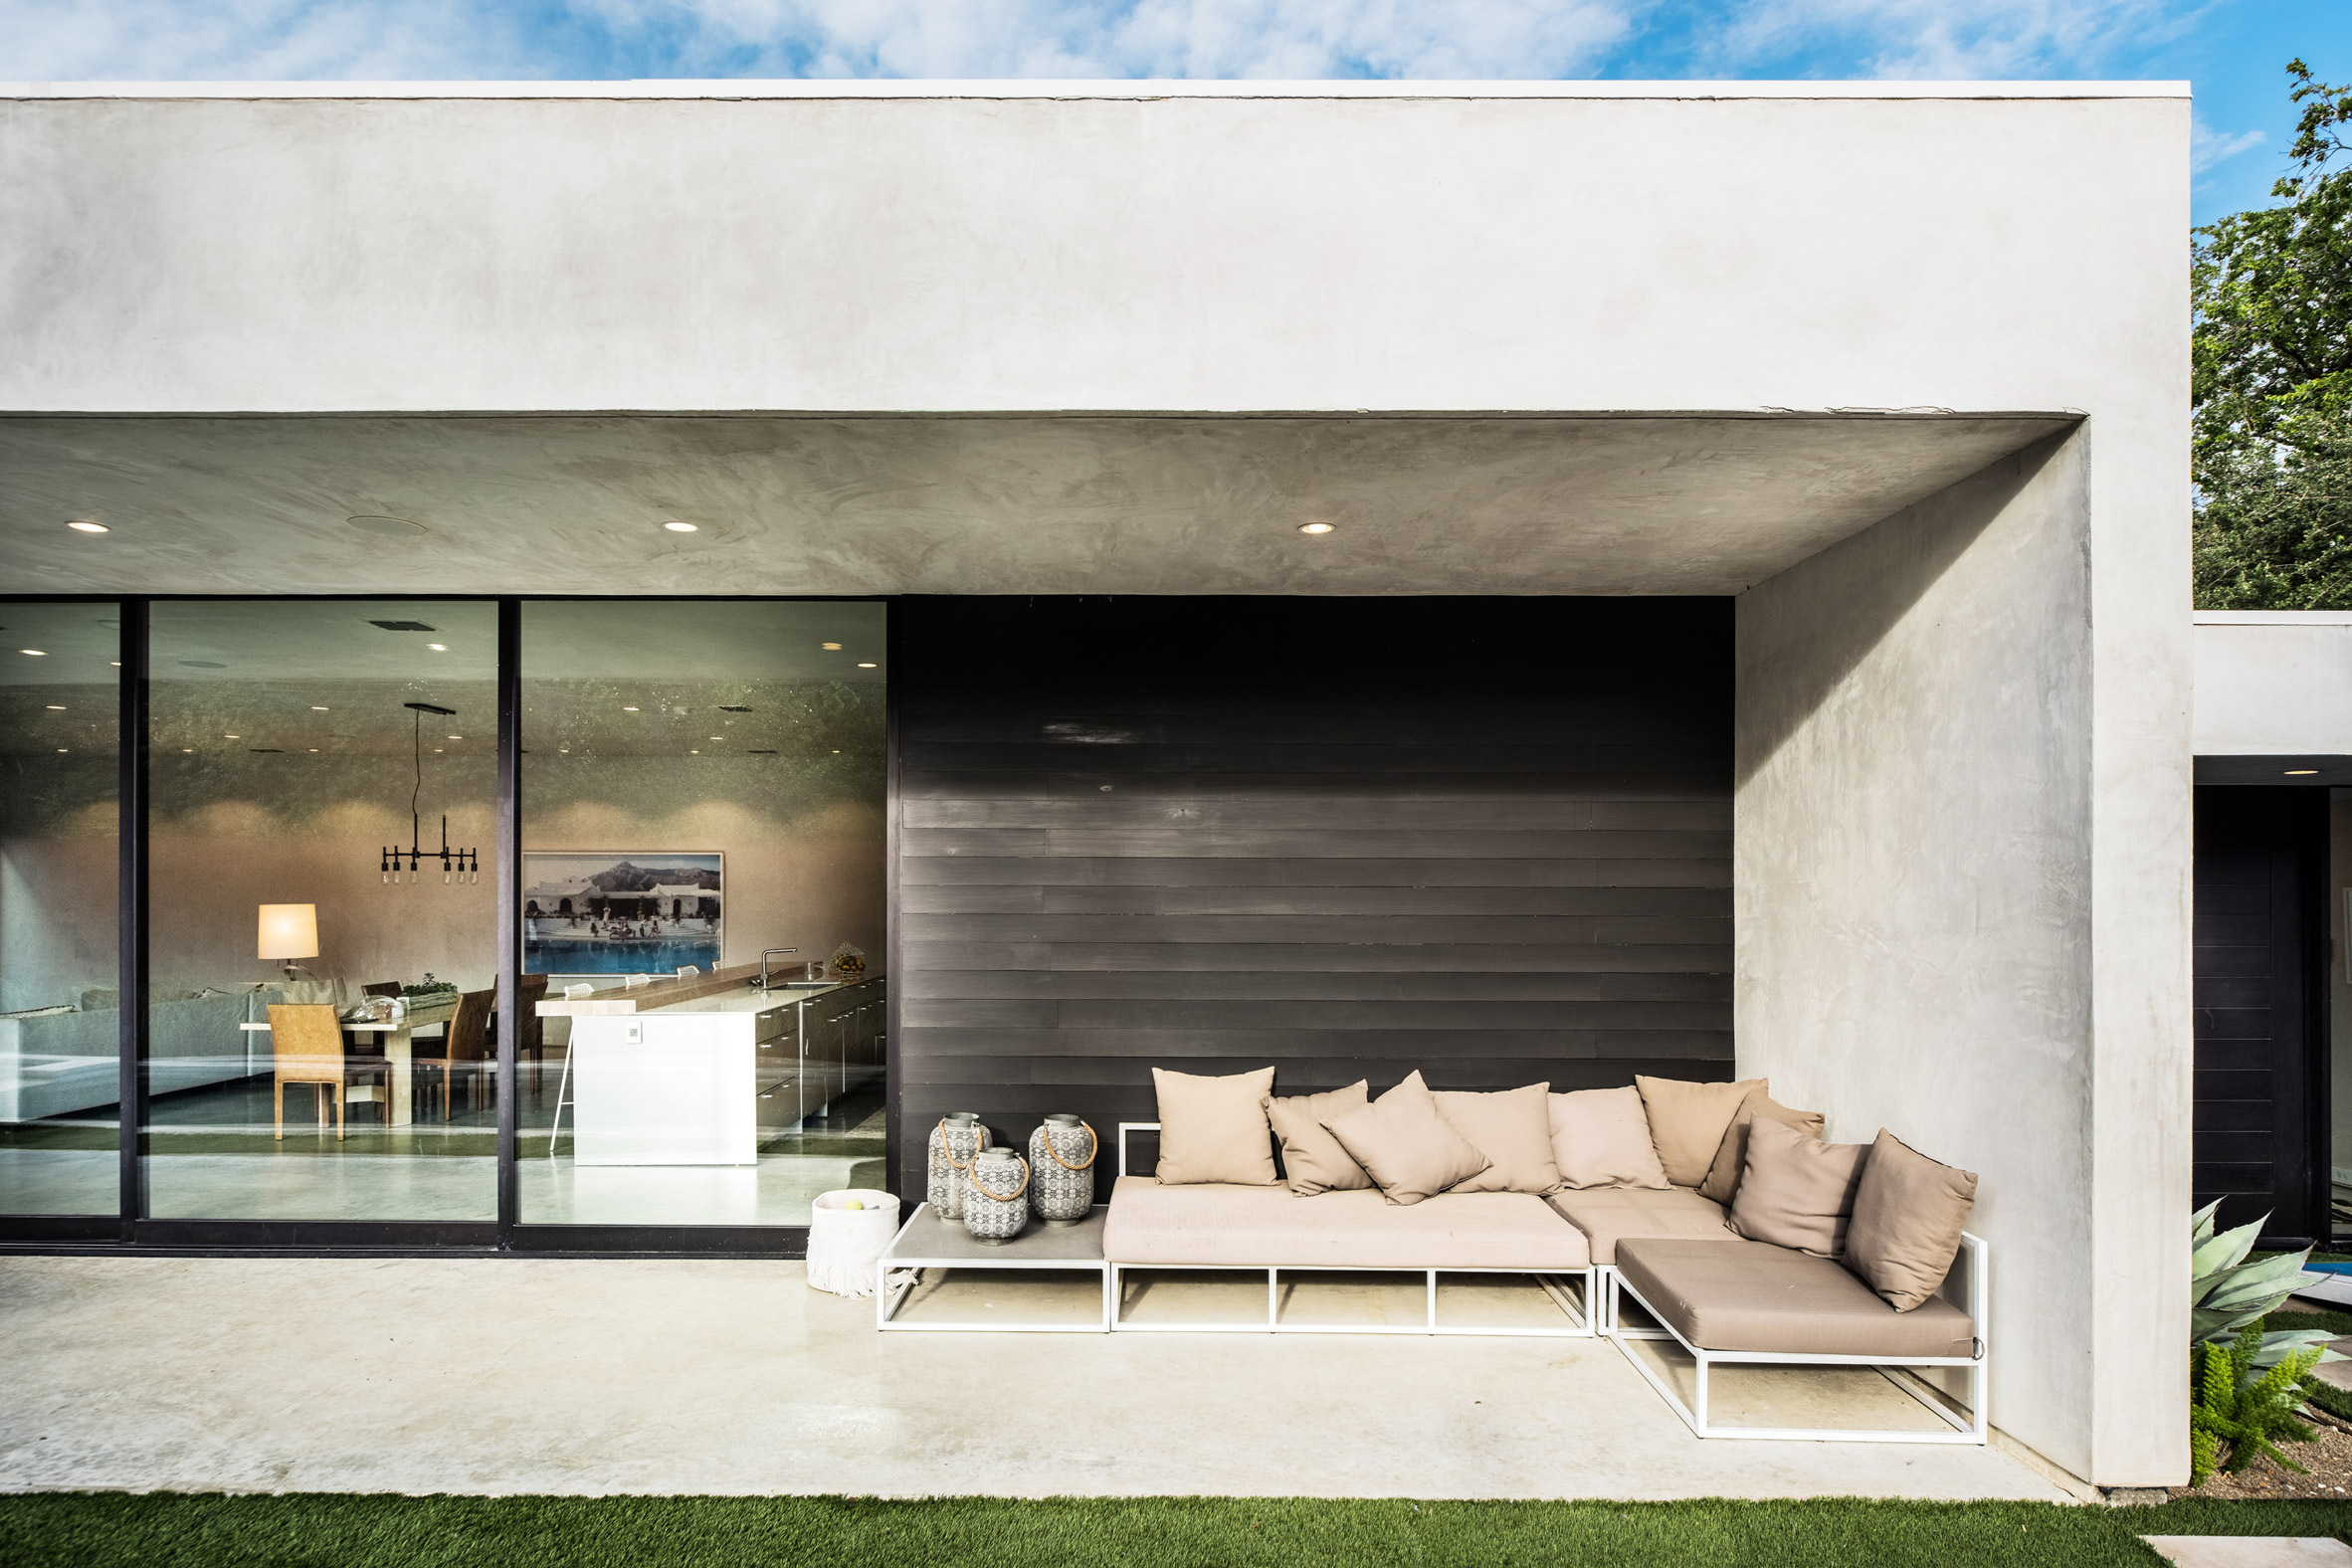 Wernerfield organises slender Dallas residence around pool terrace and garden